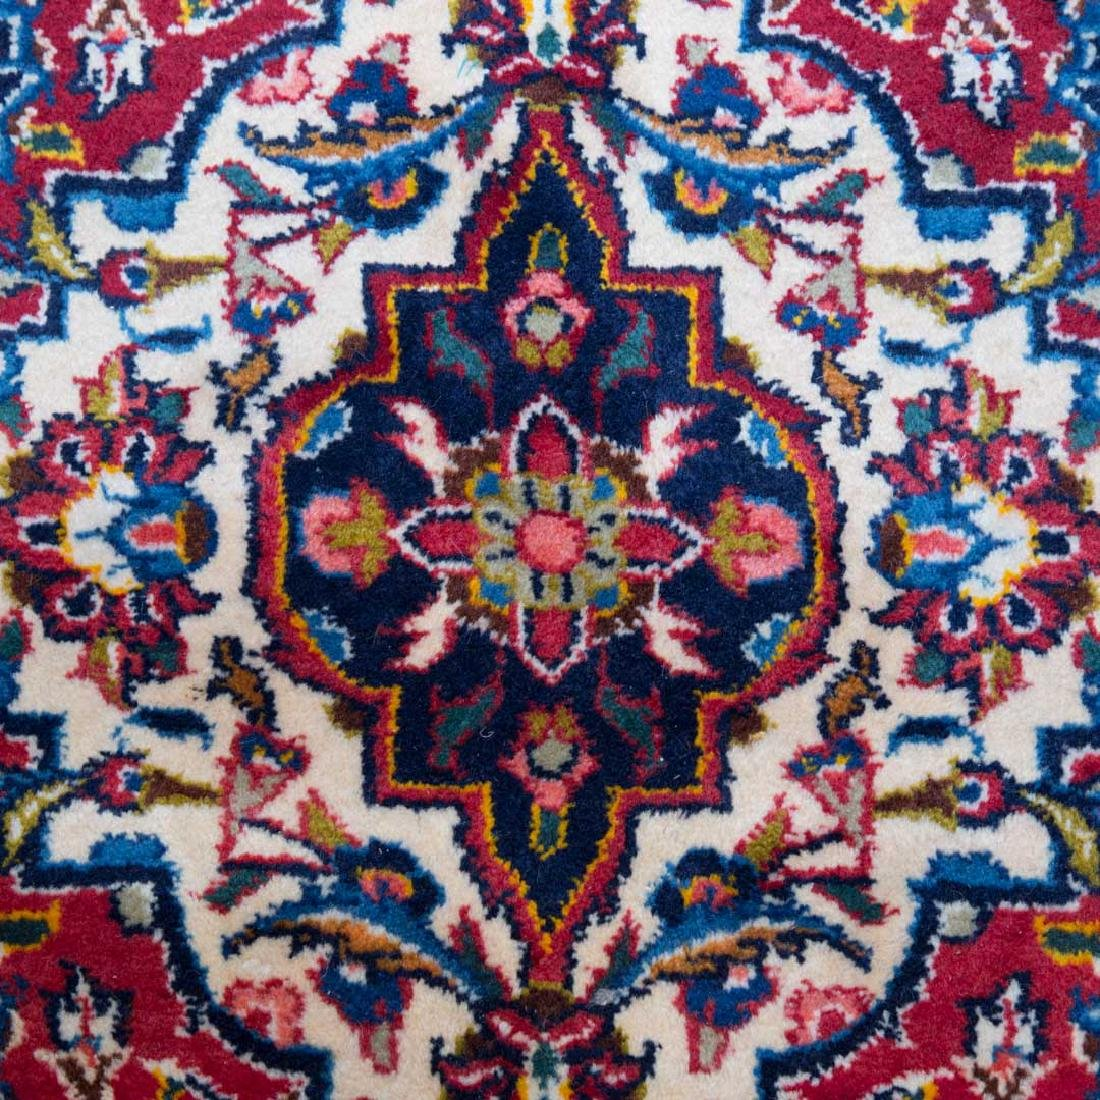 Persian Keshan carpet, approx. 9.9 x 13.3 - 4